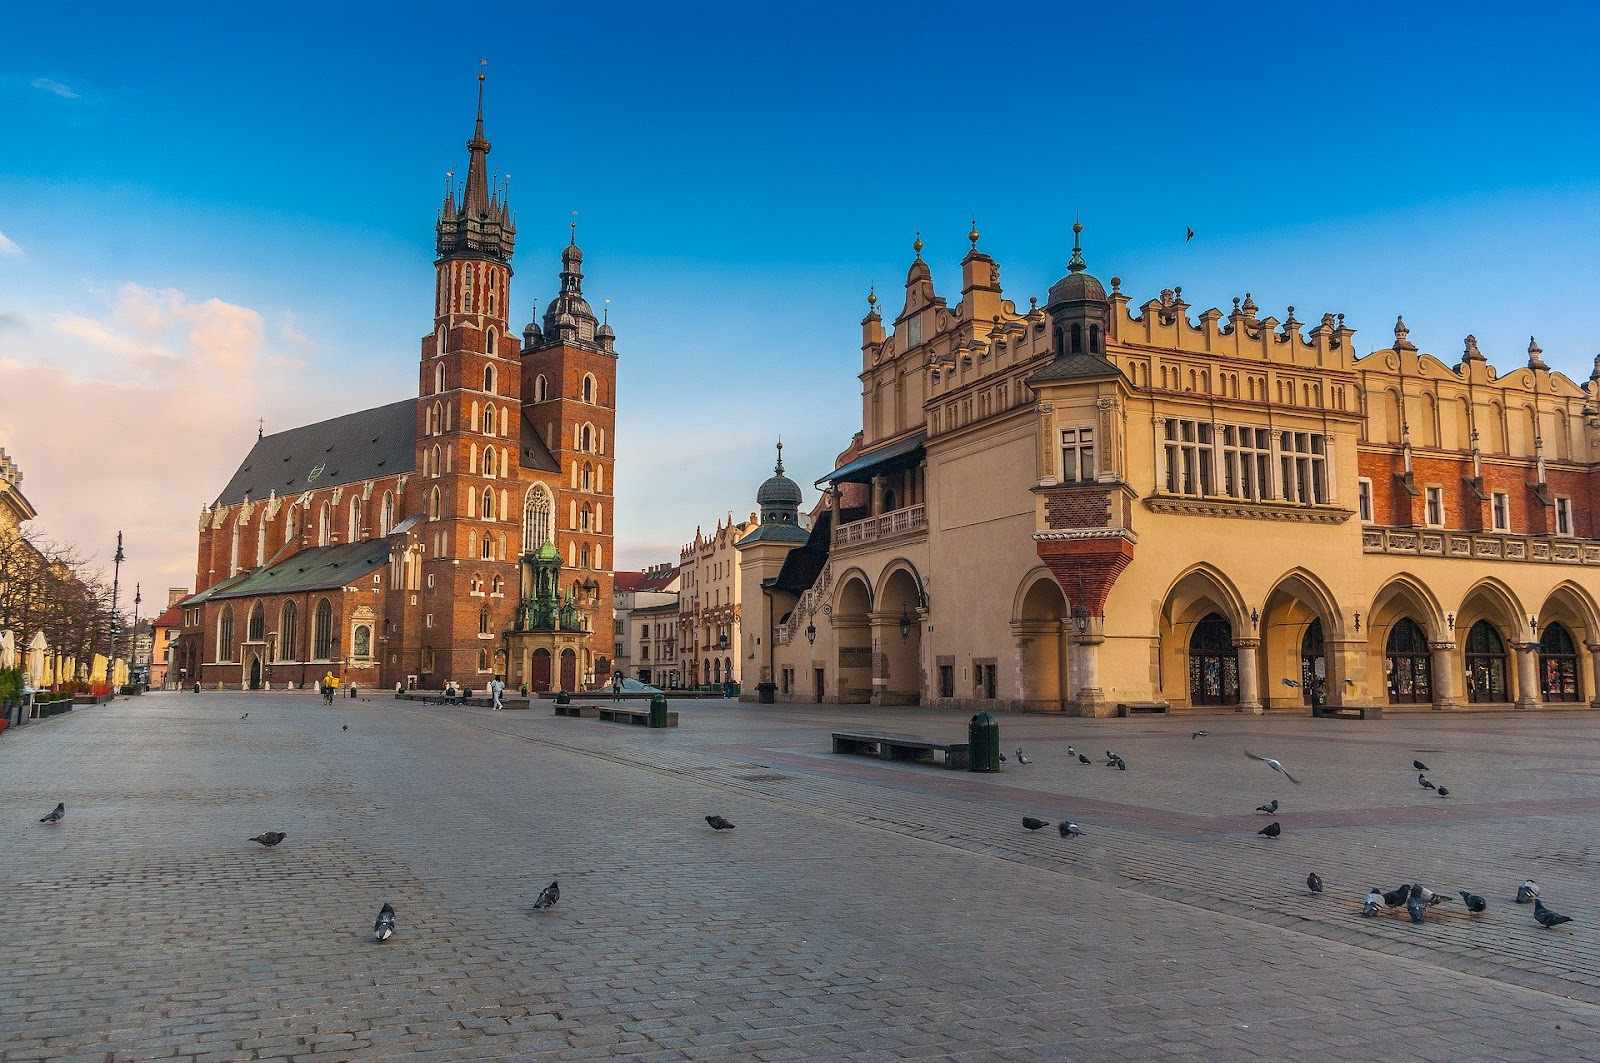 krakow traditional empty medieval market square with pigeons and basilic in background on a clear day